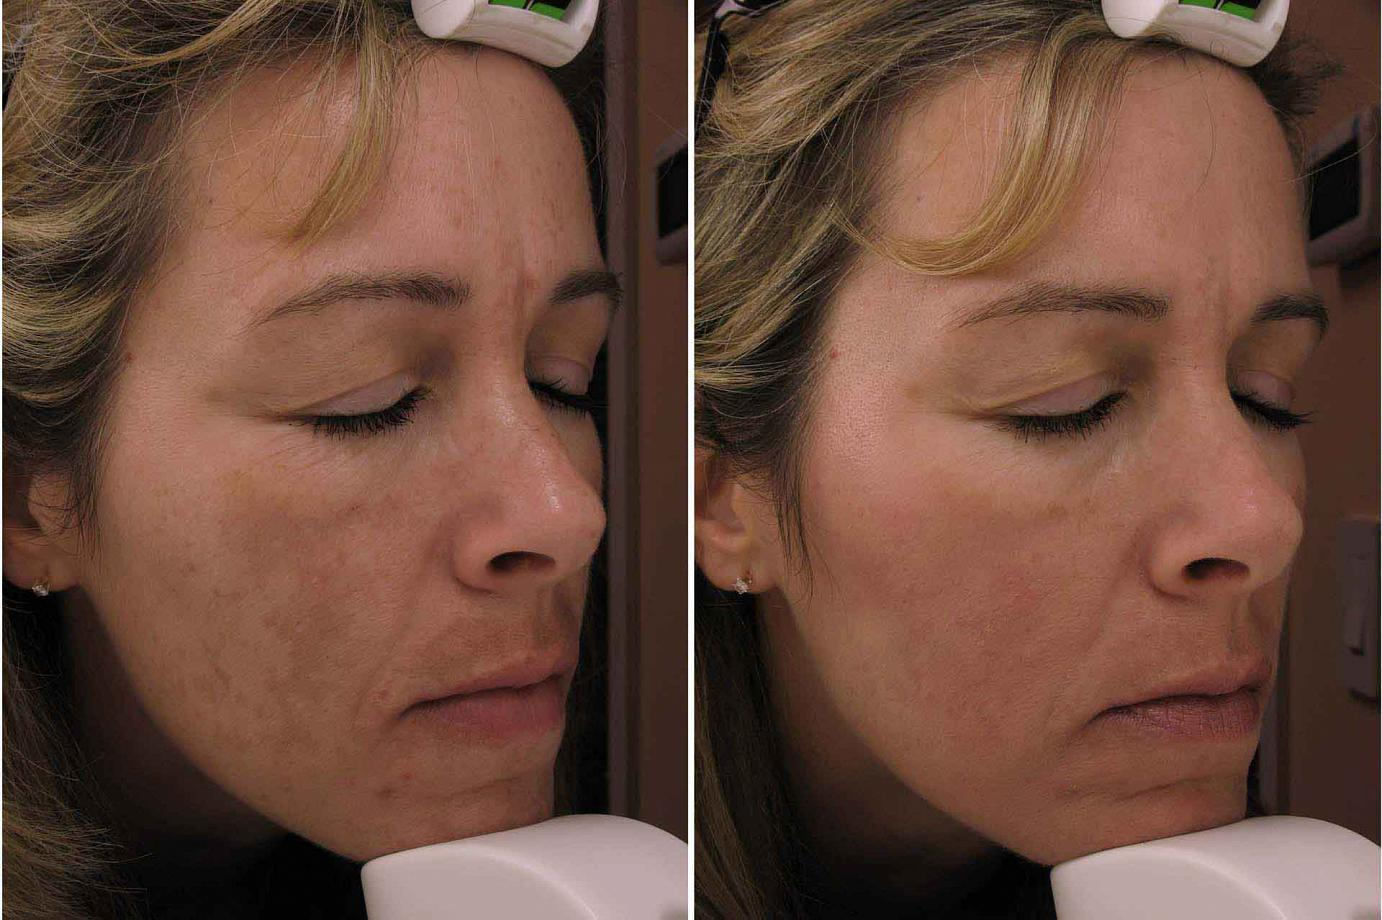 Right Before & After Melasma Treatment